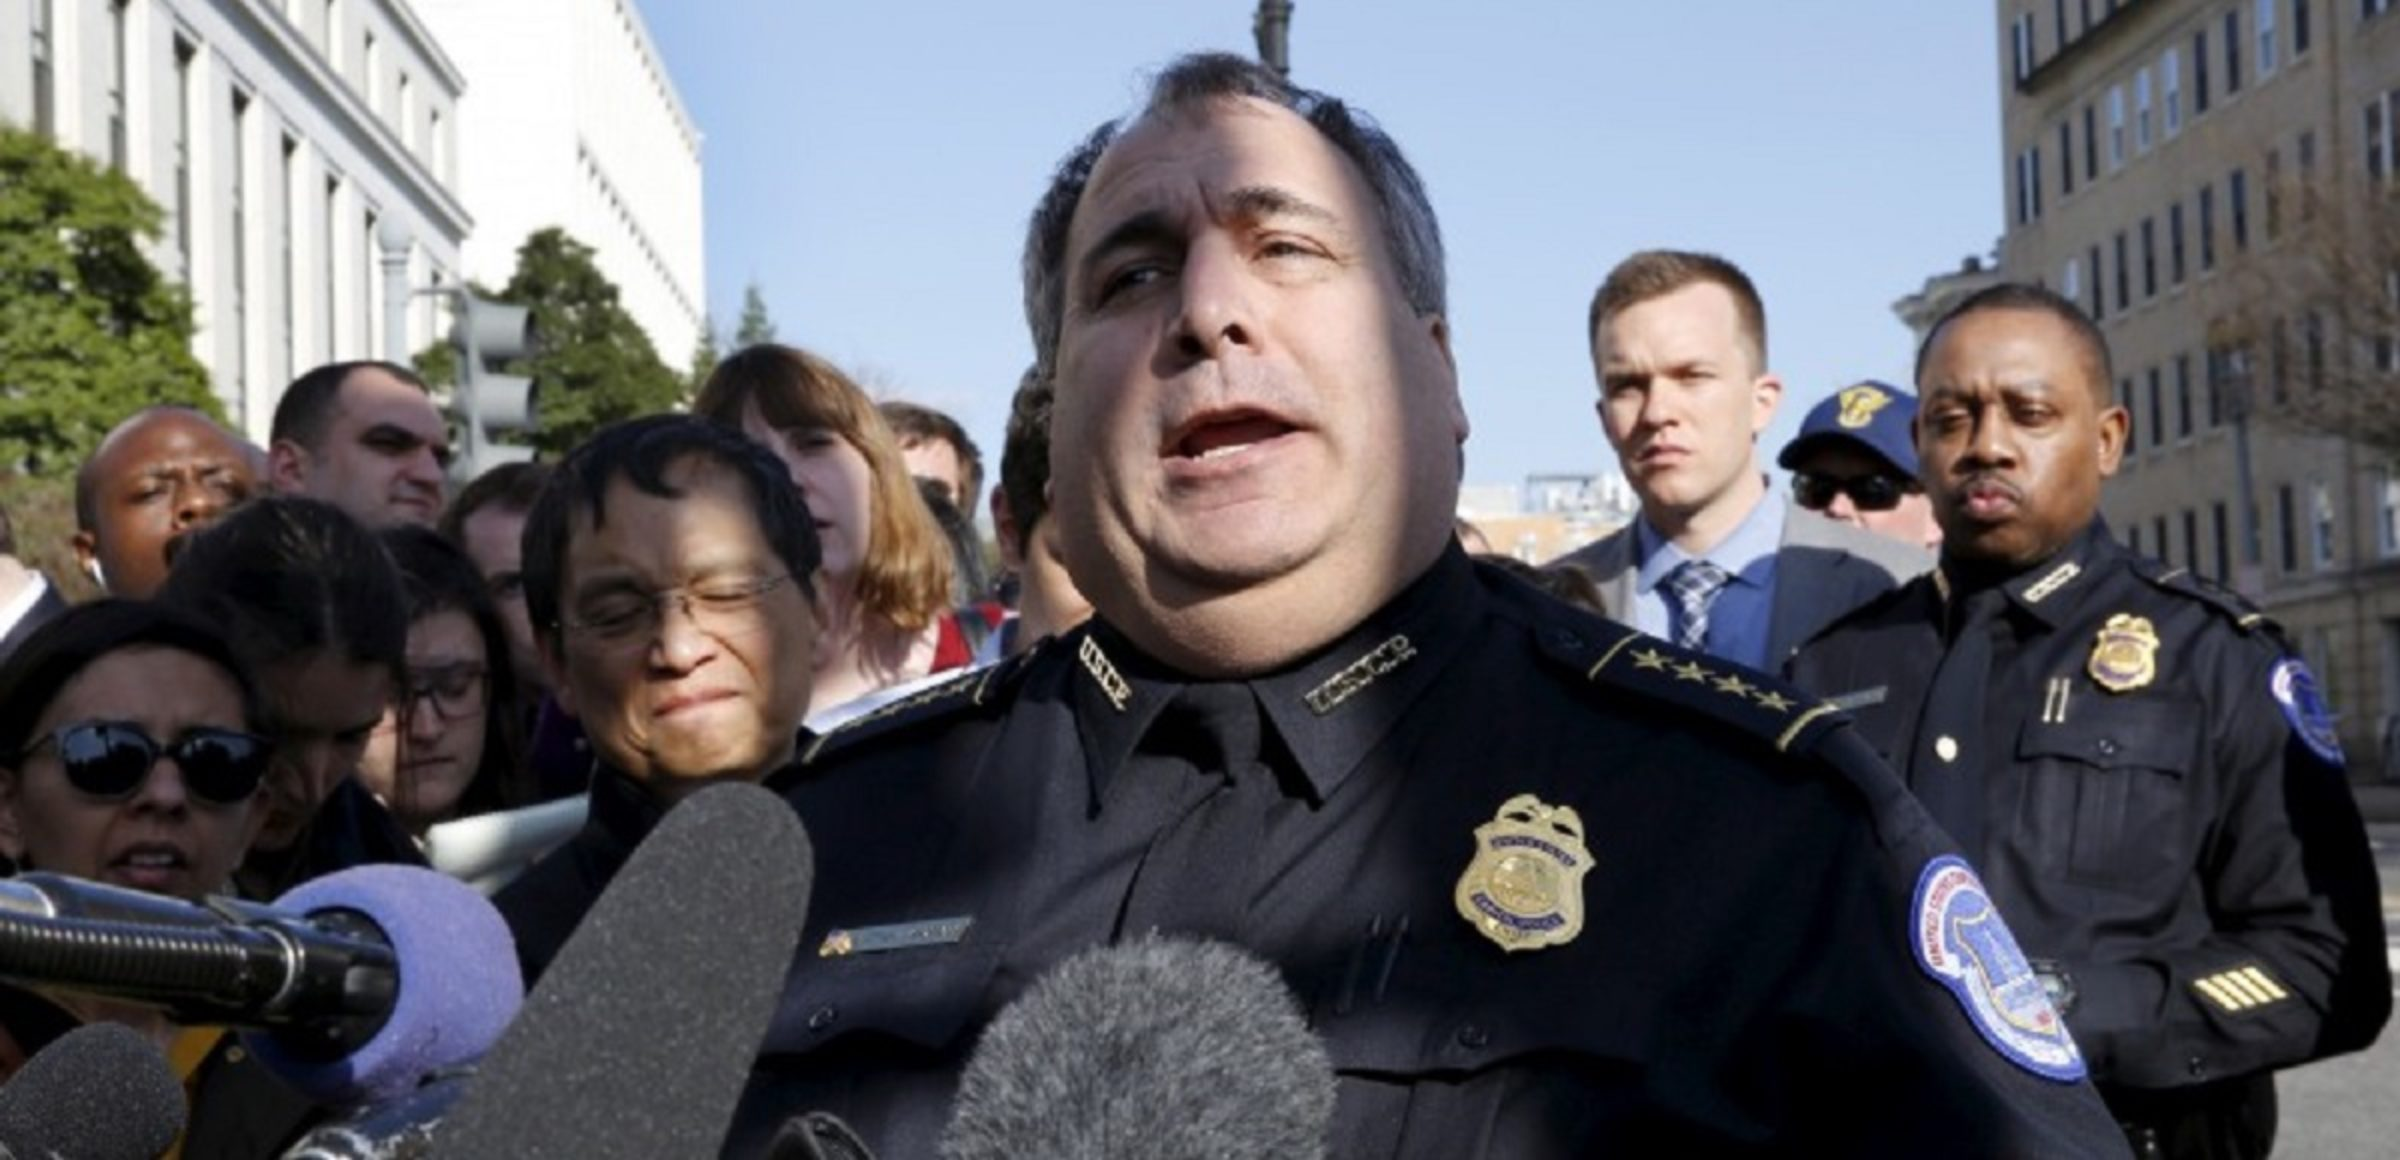 U.S. Capitol Police Chief Matthew Verderosa speaks to reporters about a shooting incident at the Capitol Visitor Center in Washington, March 28, 2016. REUTERS/Yuri Gripas